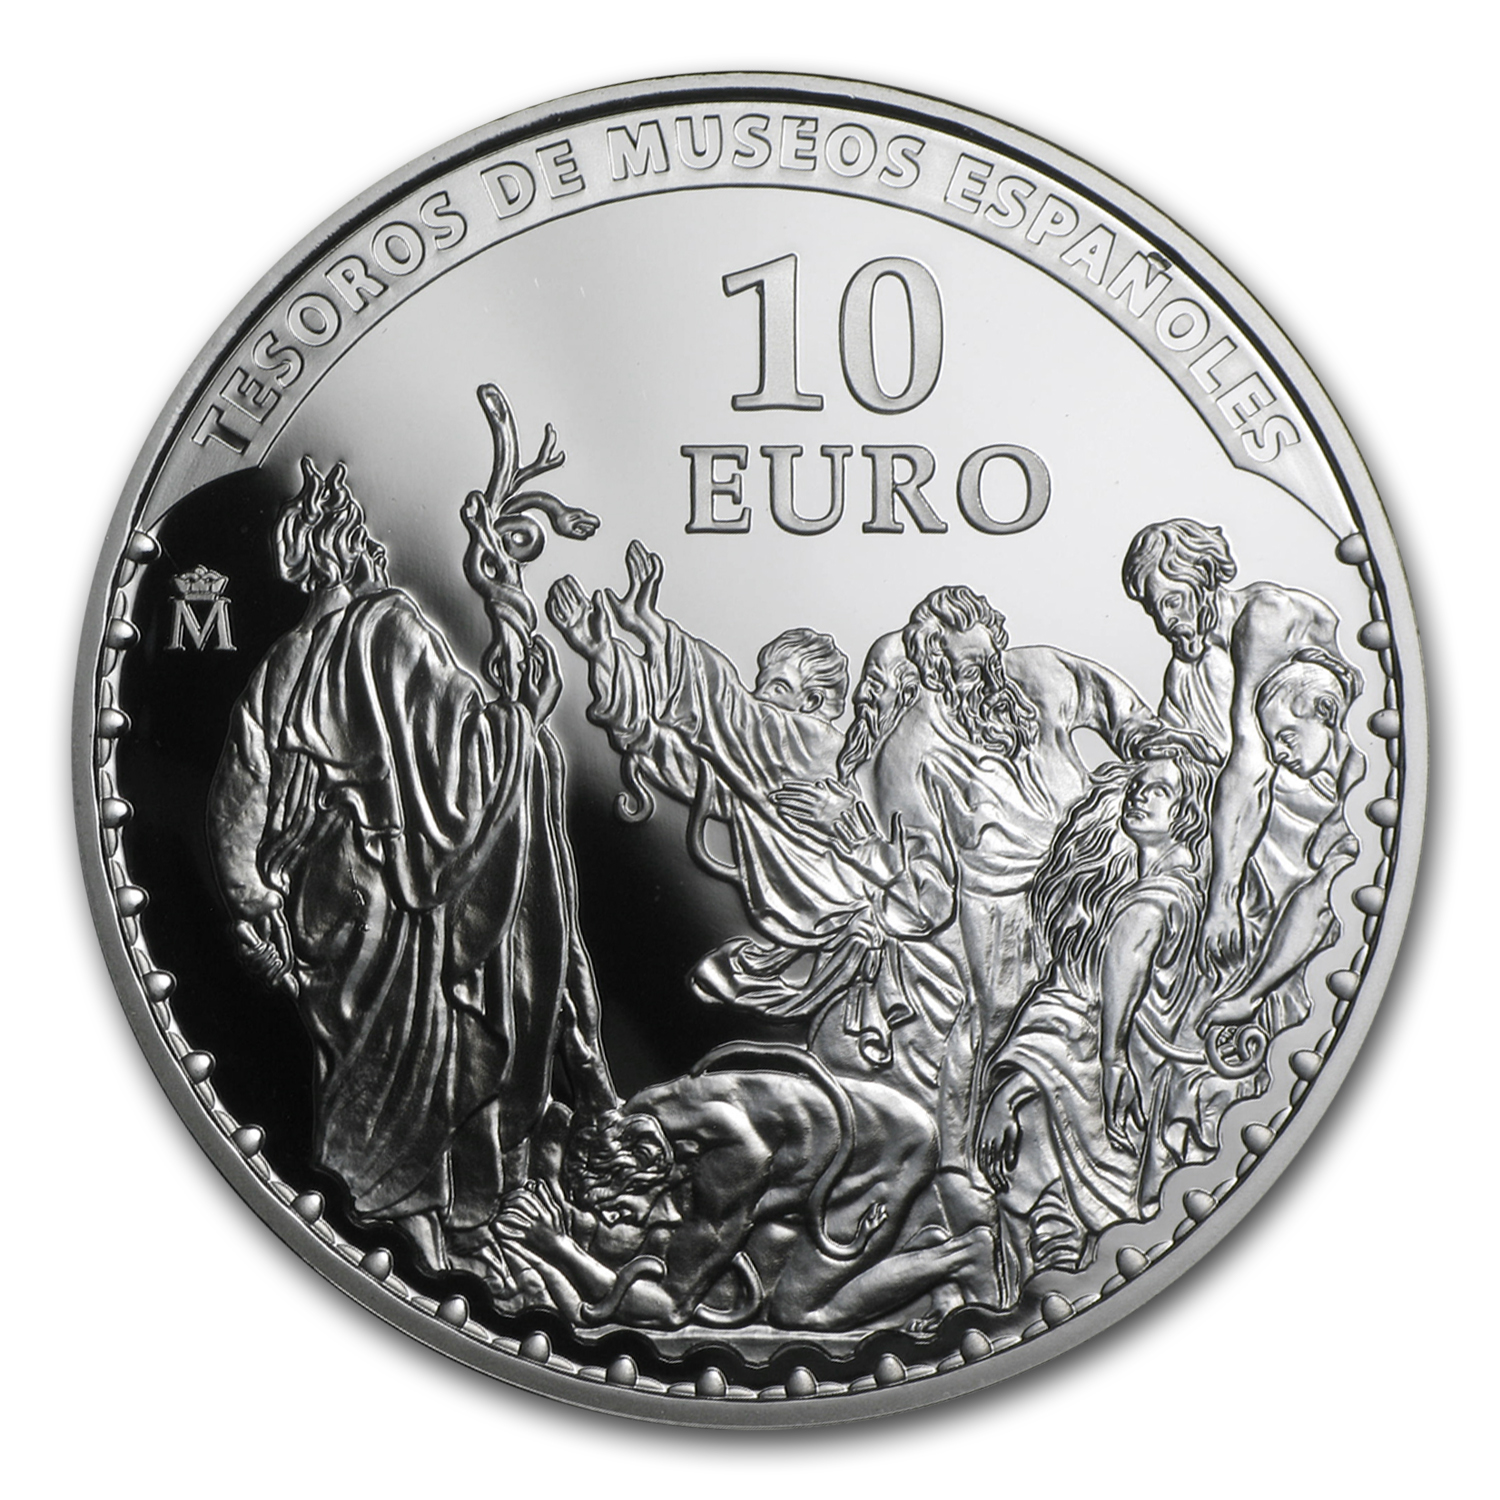 2014 Proof Silver €10 Treasures of the Spanish Museums (Van Dyck)